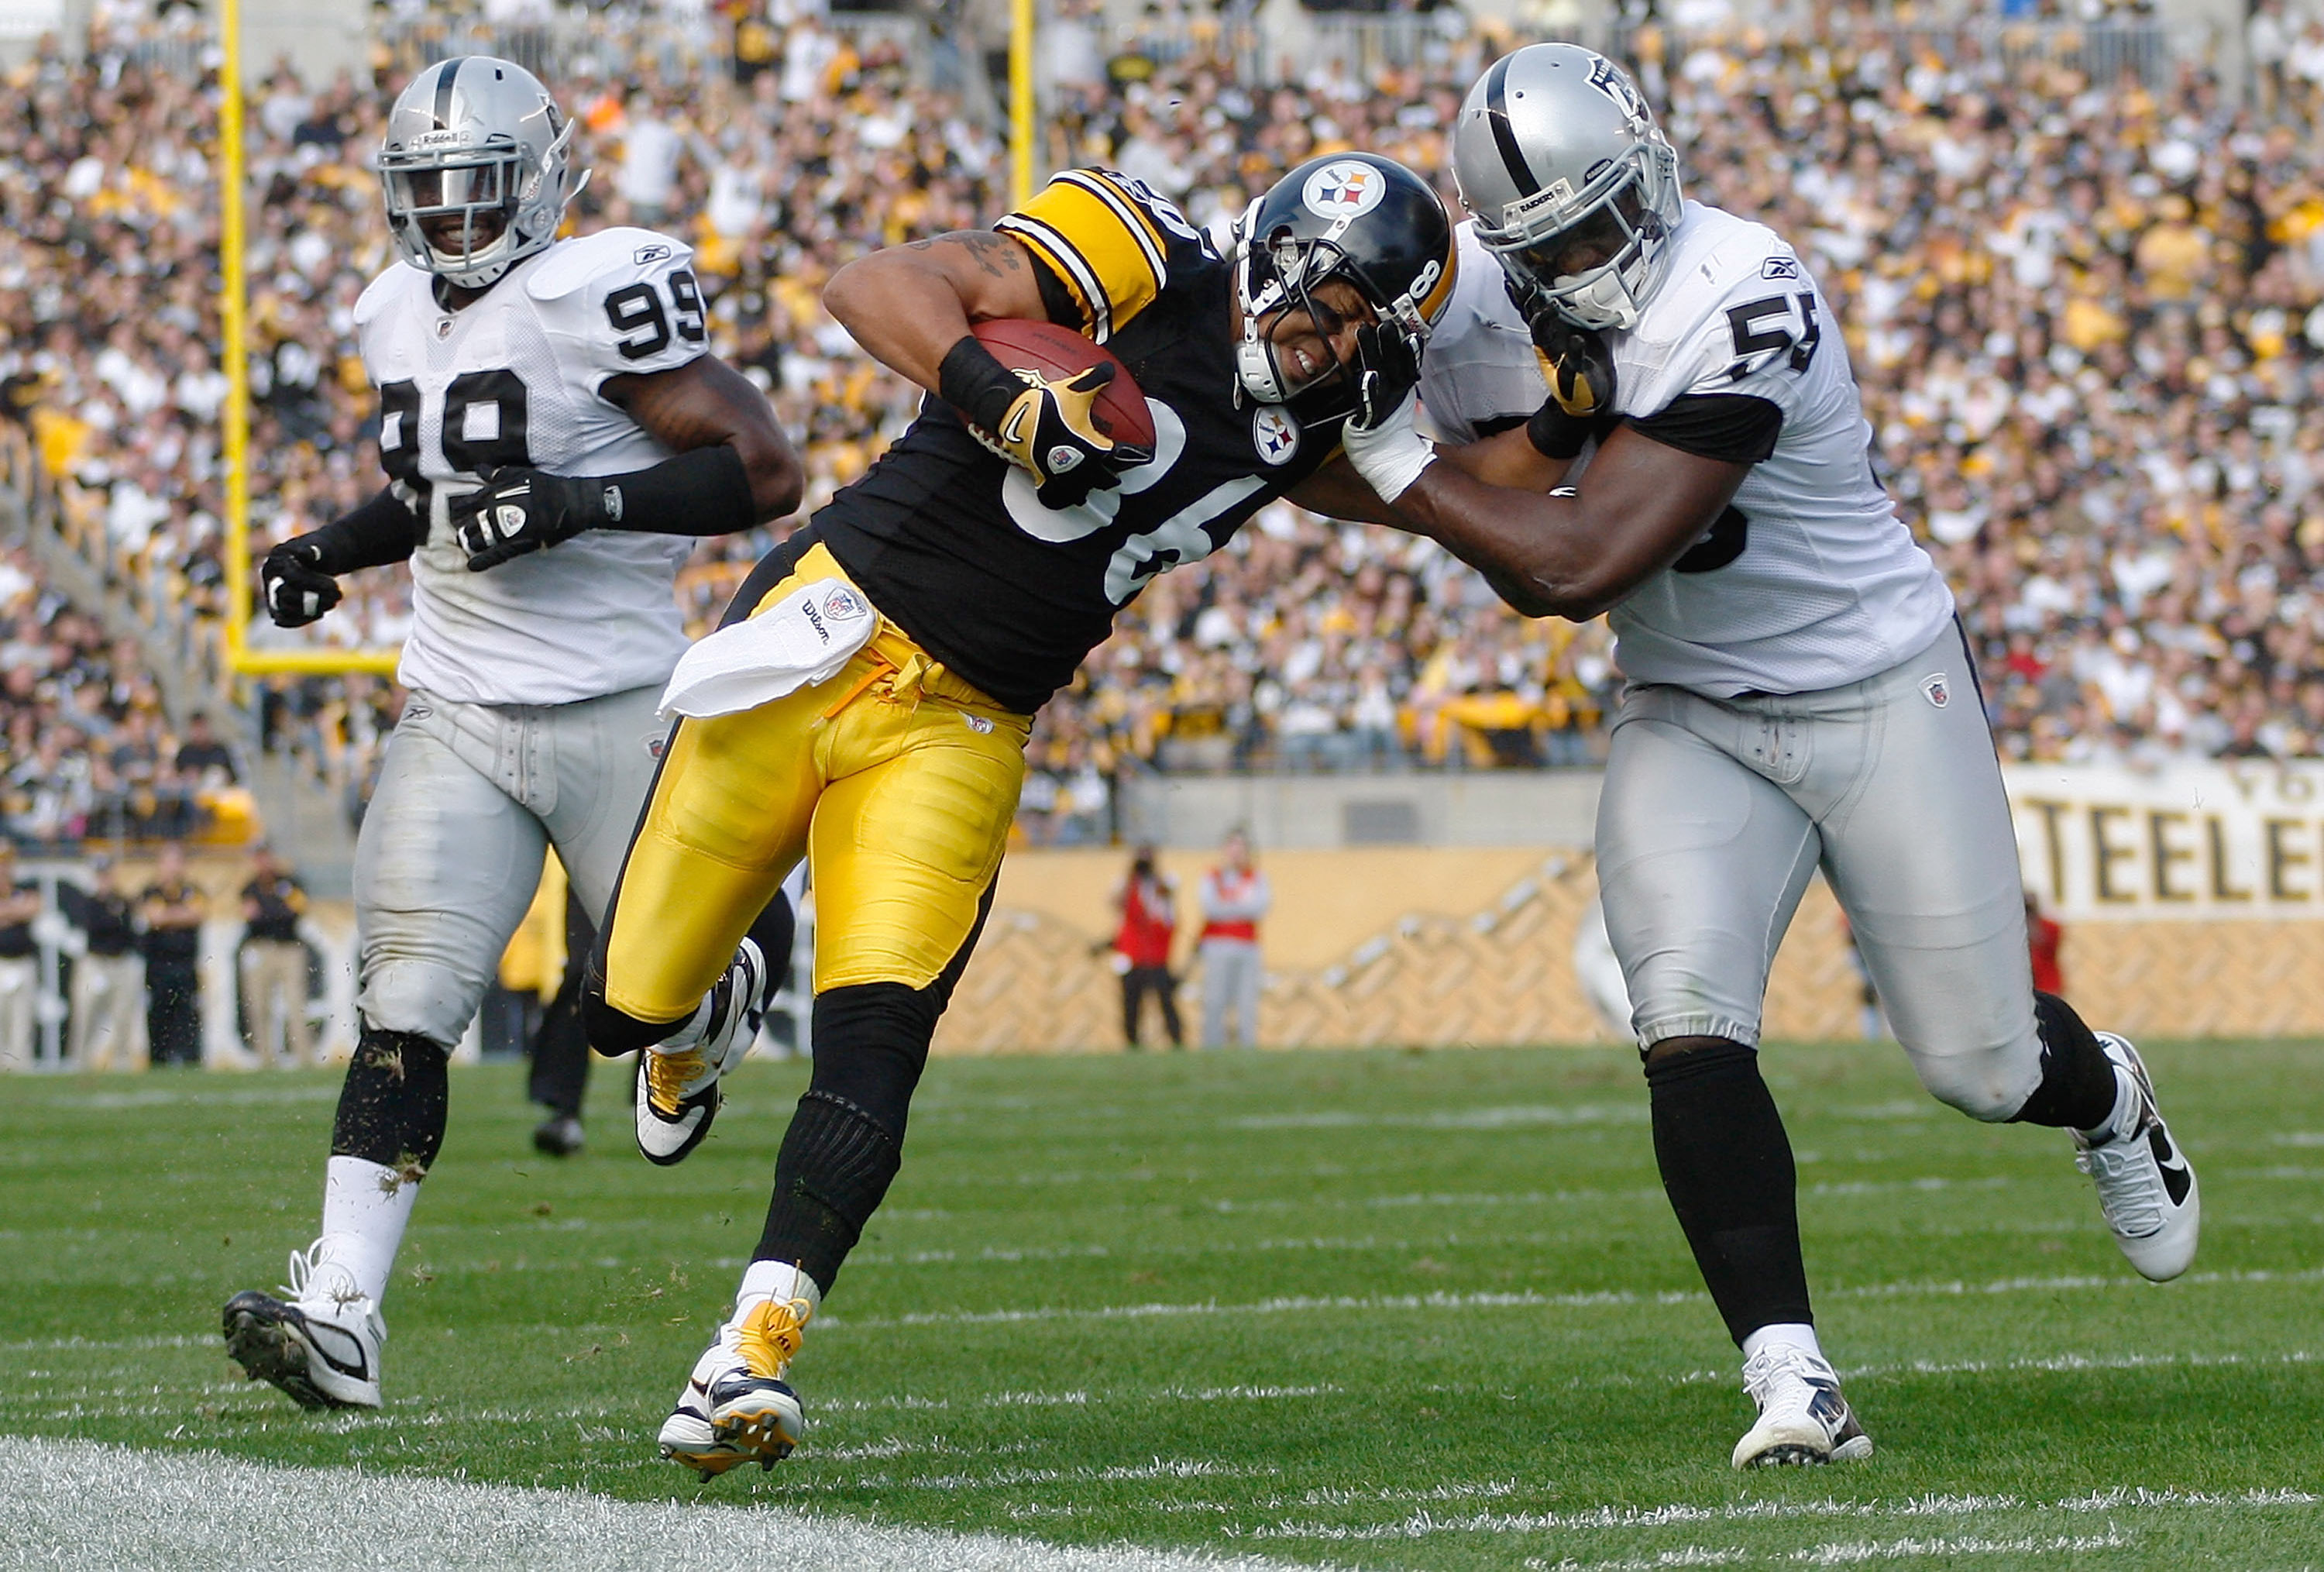 PITTSBURGH - NOVEMBER 21:  Hines Ward #86 of the Pittsburgh Steelers attempts to stiff arm Rolando McClain #55 of the Oakland Raiders after a catch during the game on November 21, 2010 at Heinz Field in Pittsburgh, Pennsylvania.  (Photo by Jared Wickerham